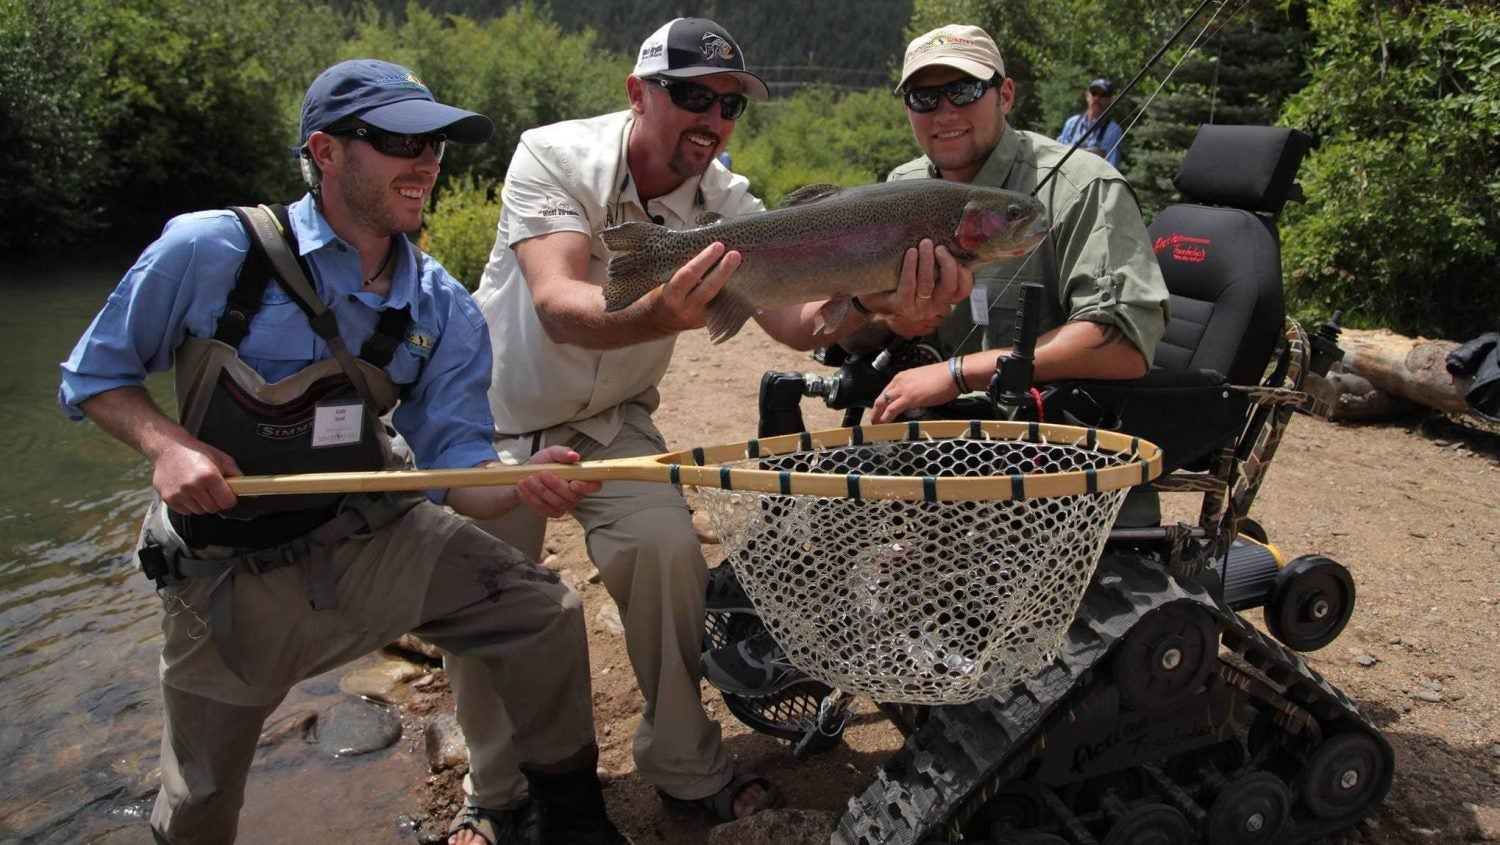 One man holds net as another holds a large rainbow trout, celebrating a veteran in a wheelchair who caught a fish